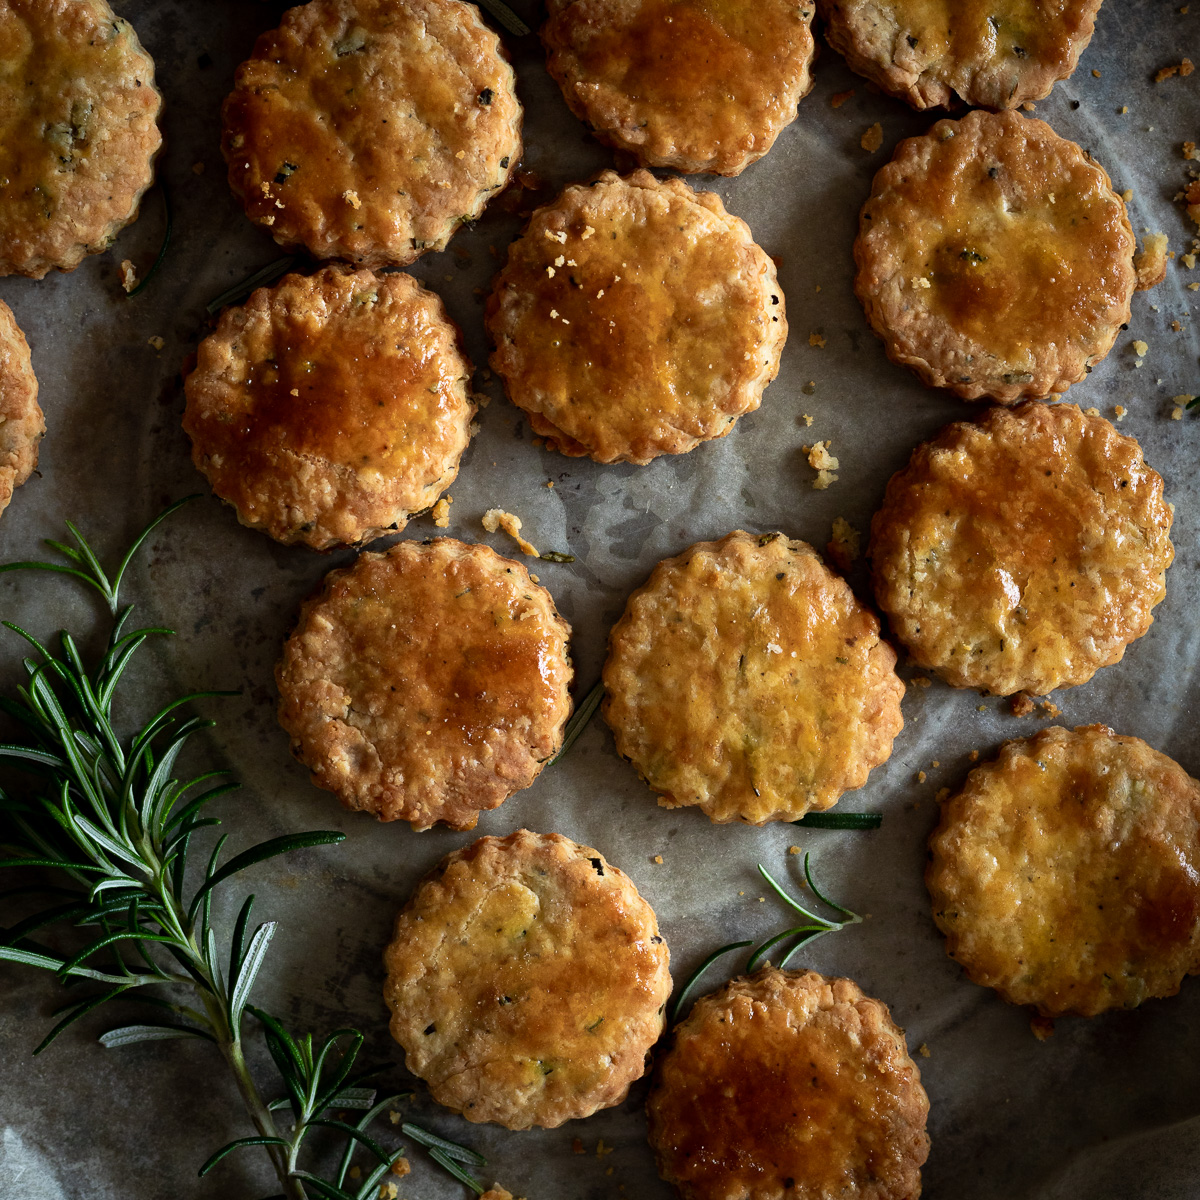 Parmesan and rosemary shortbread crackers